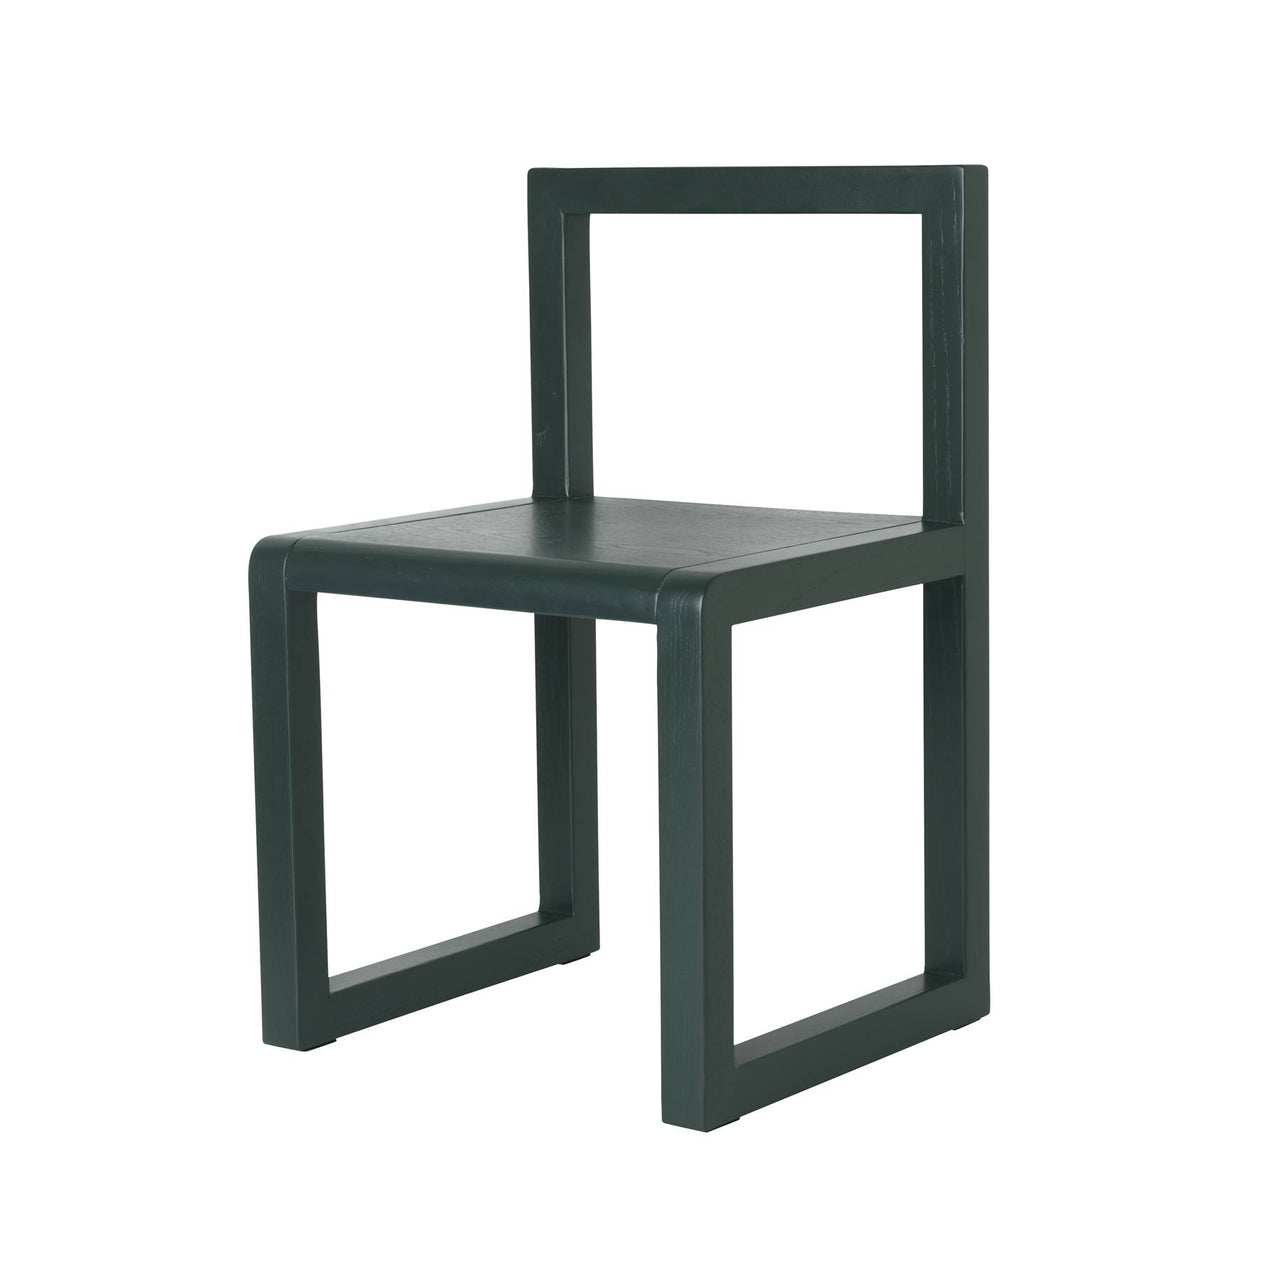 Little Architect Chair: Dark Green